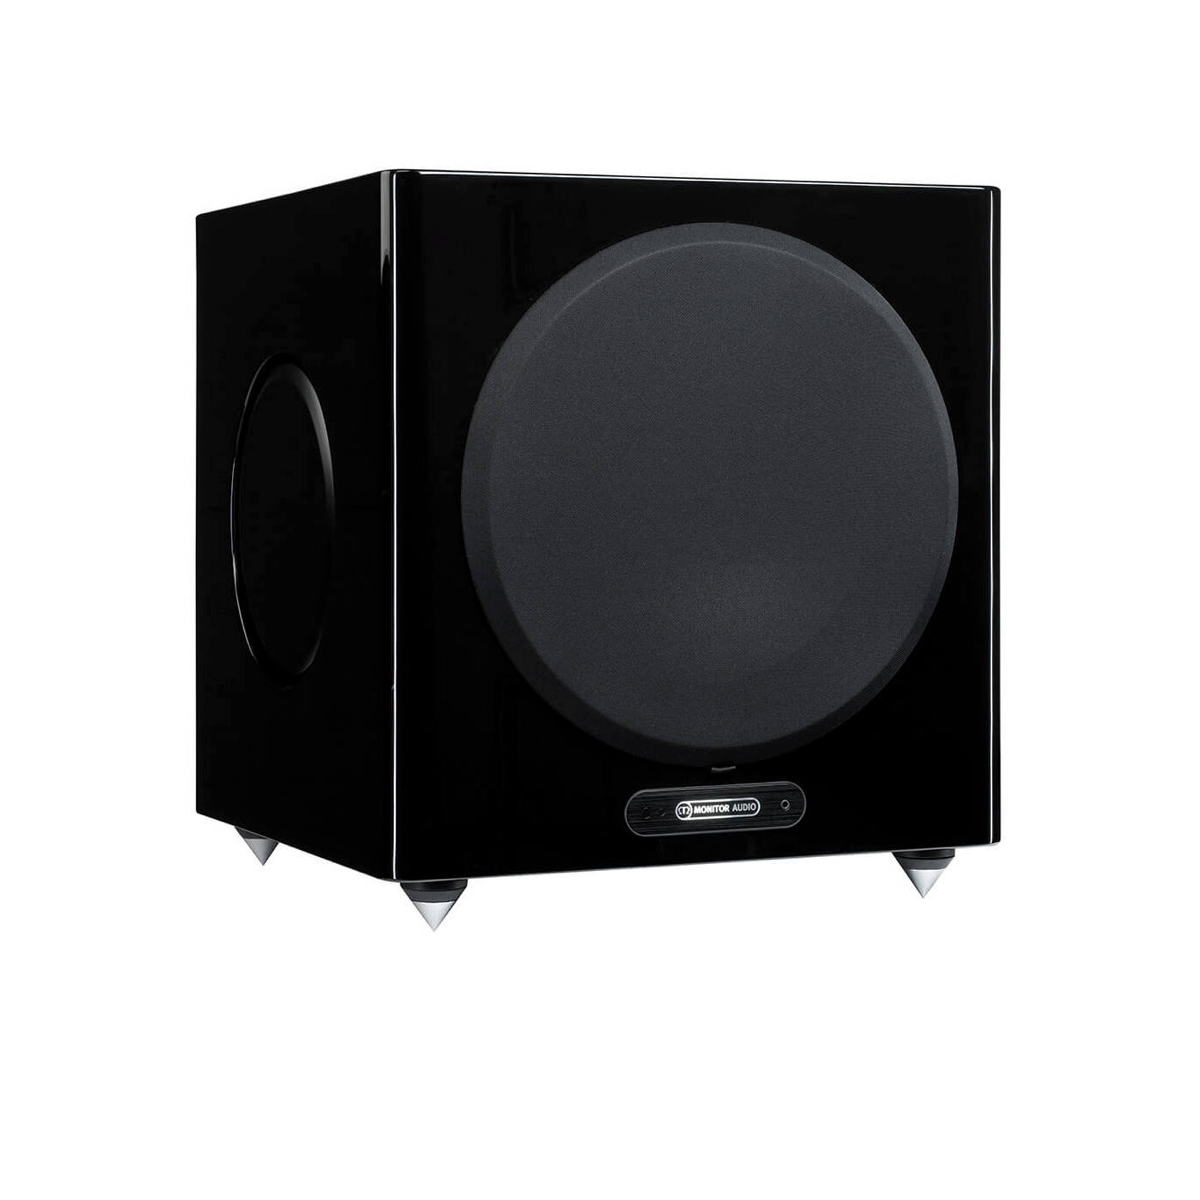 Monitor Audio - Gold W12, Monitor Audio, Subwoofer - Auratech LLC